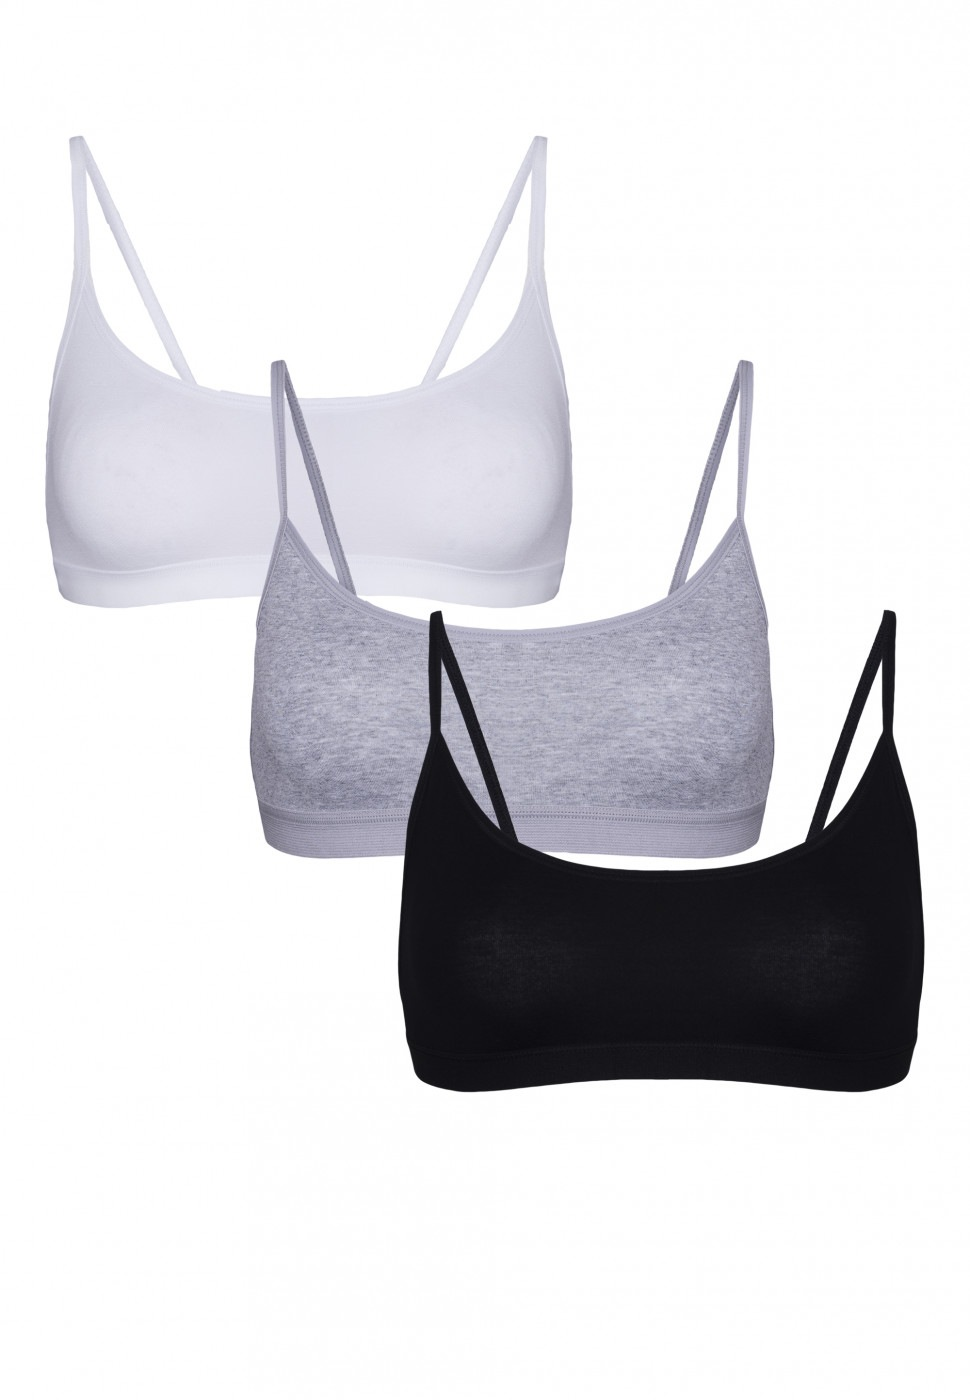 Eldar 3Packs Woman's Eldar 3Pack Top Sally Black/White/Light Grey